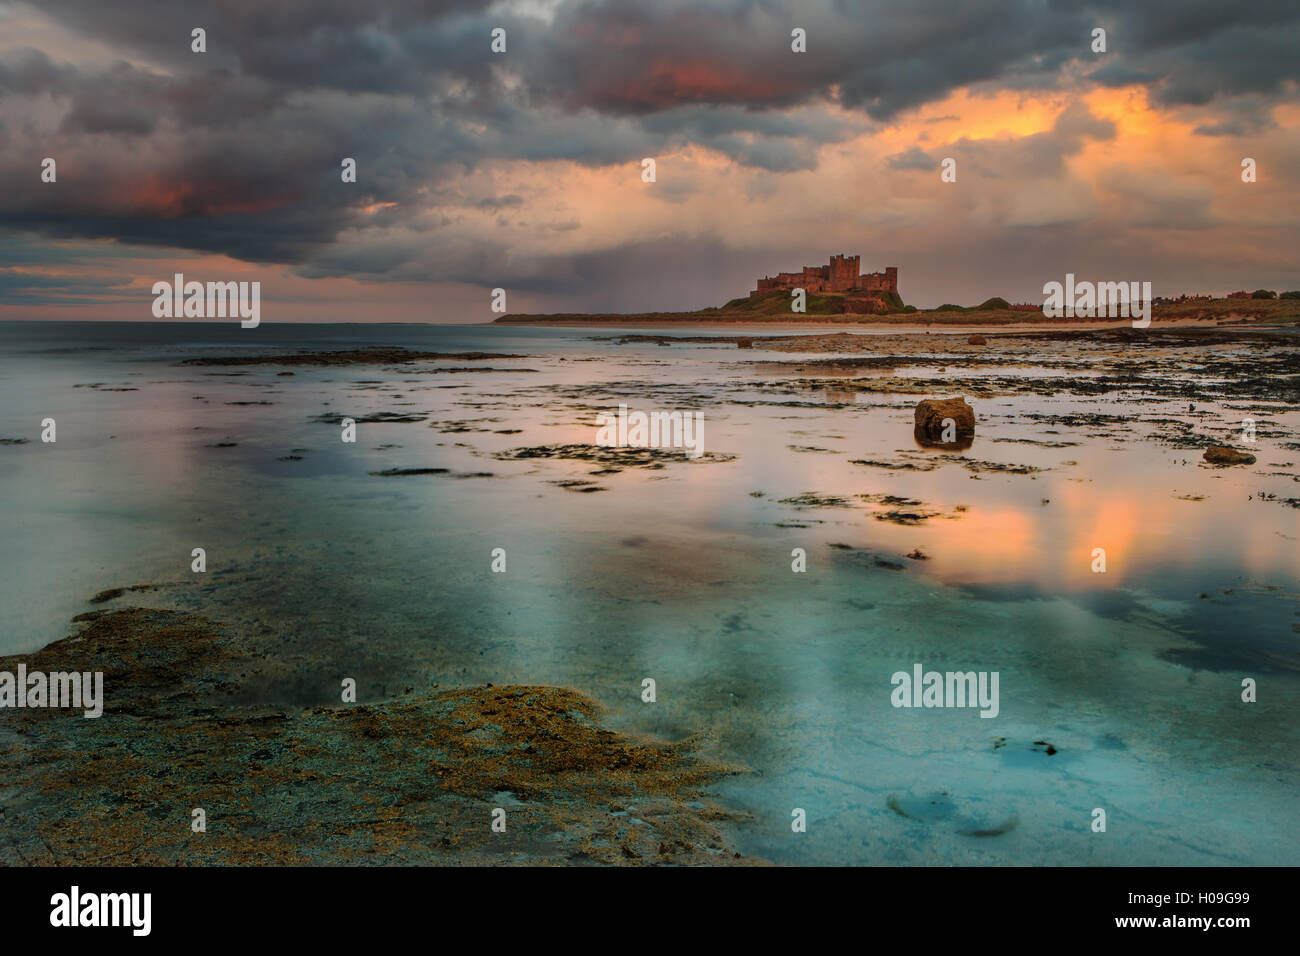 Bamburgh Castle and beach, Northumberland, England, United Kingdom, Europe - Stock Image